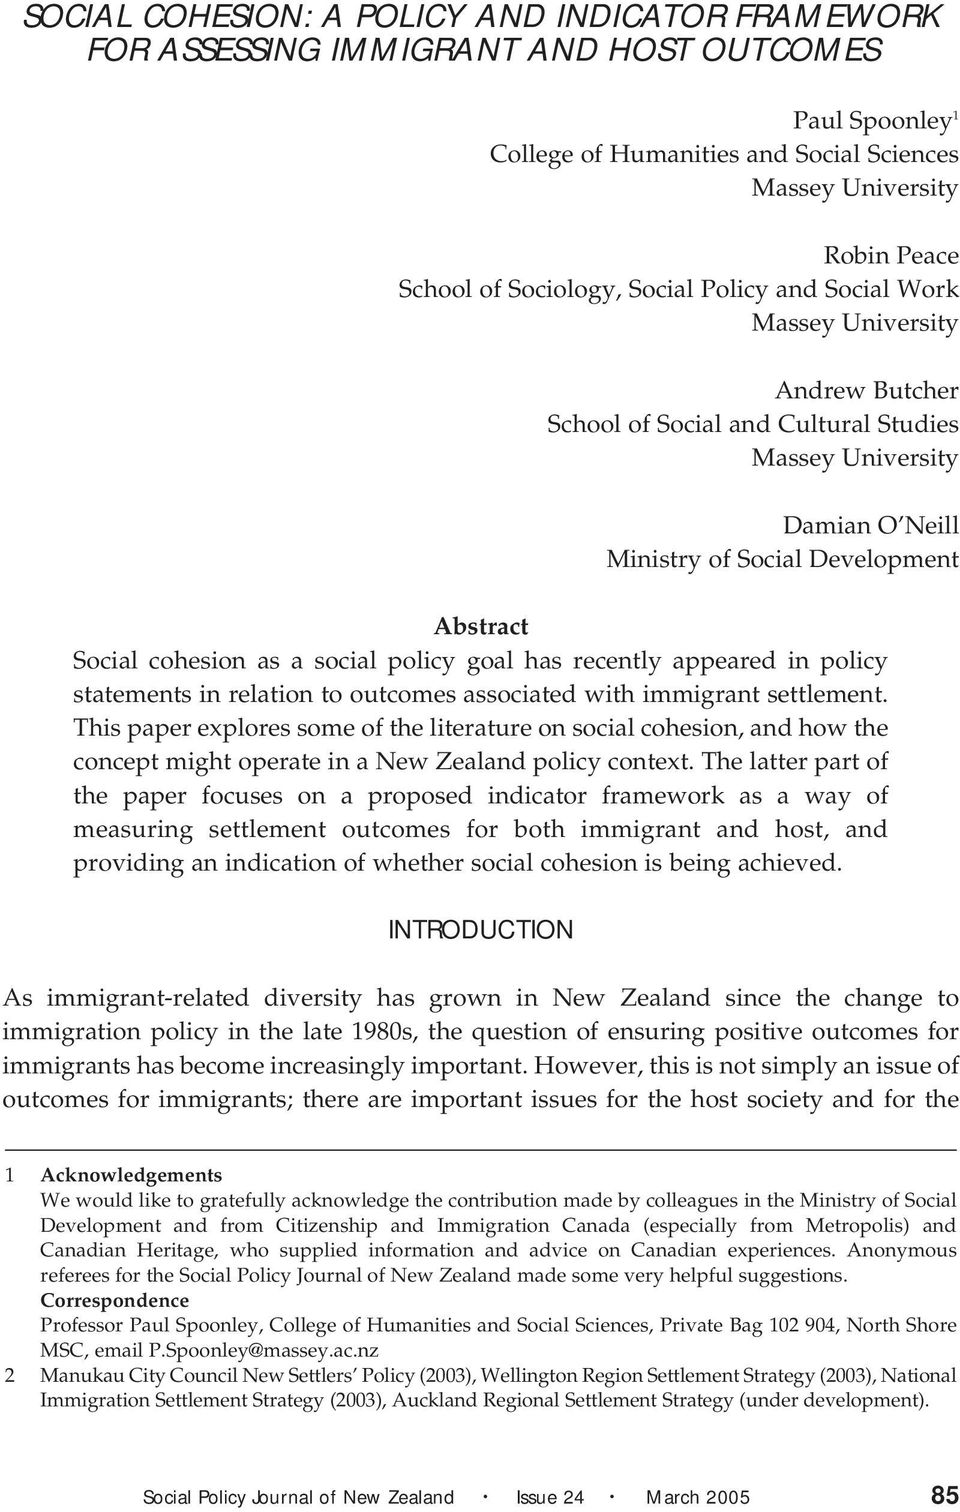 cohesion as a social policy goal has recently appeared in policy statements in relation to outcomes associated with immigrant settlement.